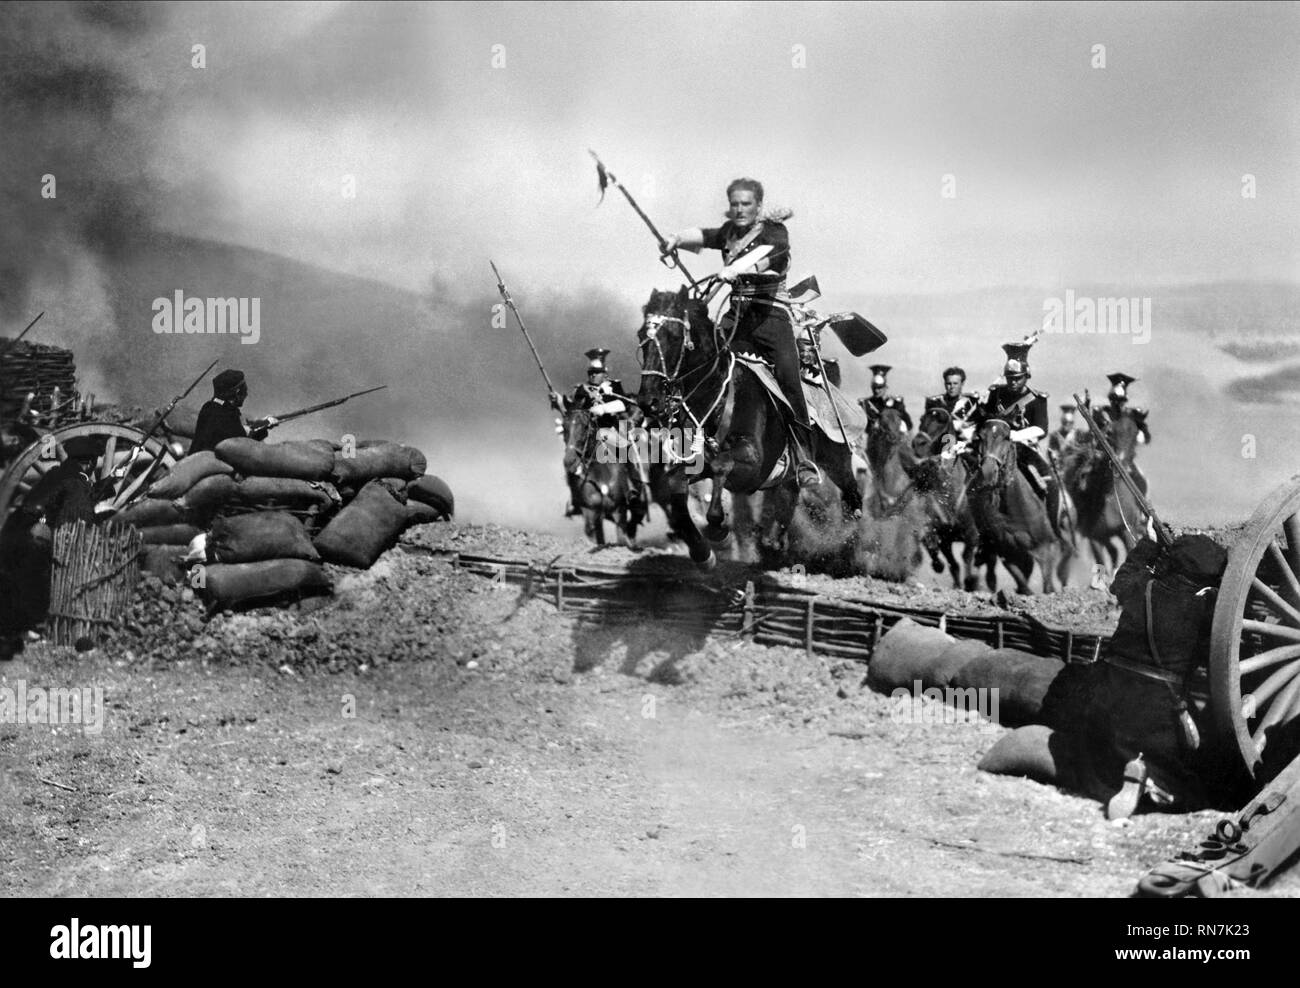 ERROL FLYNN, THE CHARGE OF THE LIGHT BRIGADE, 1936 - Stock Image